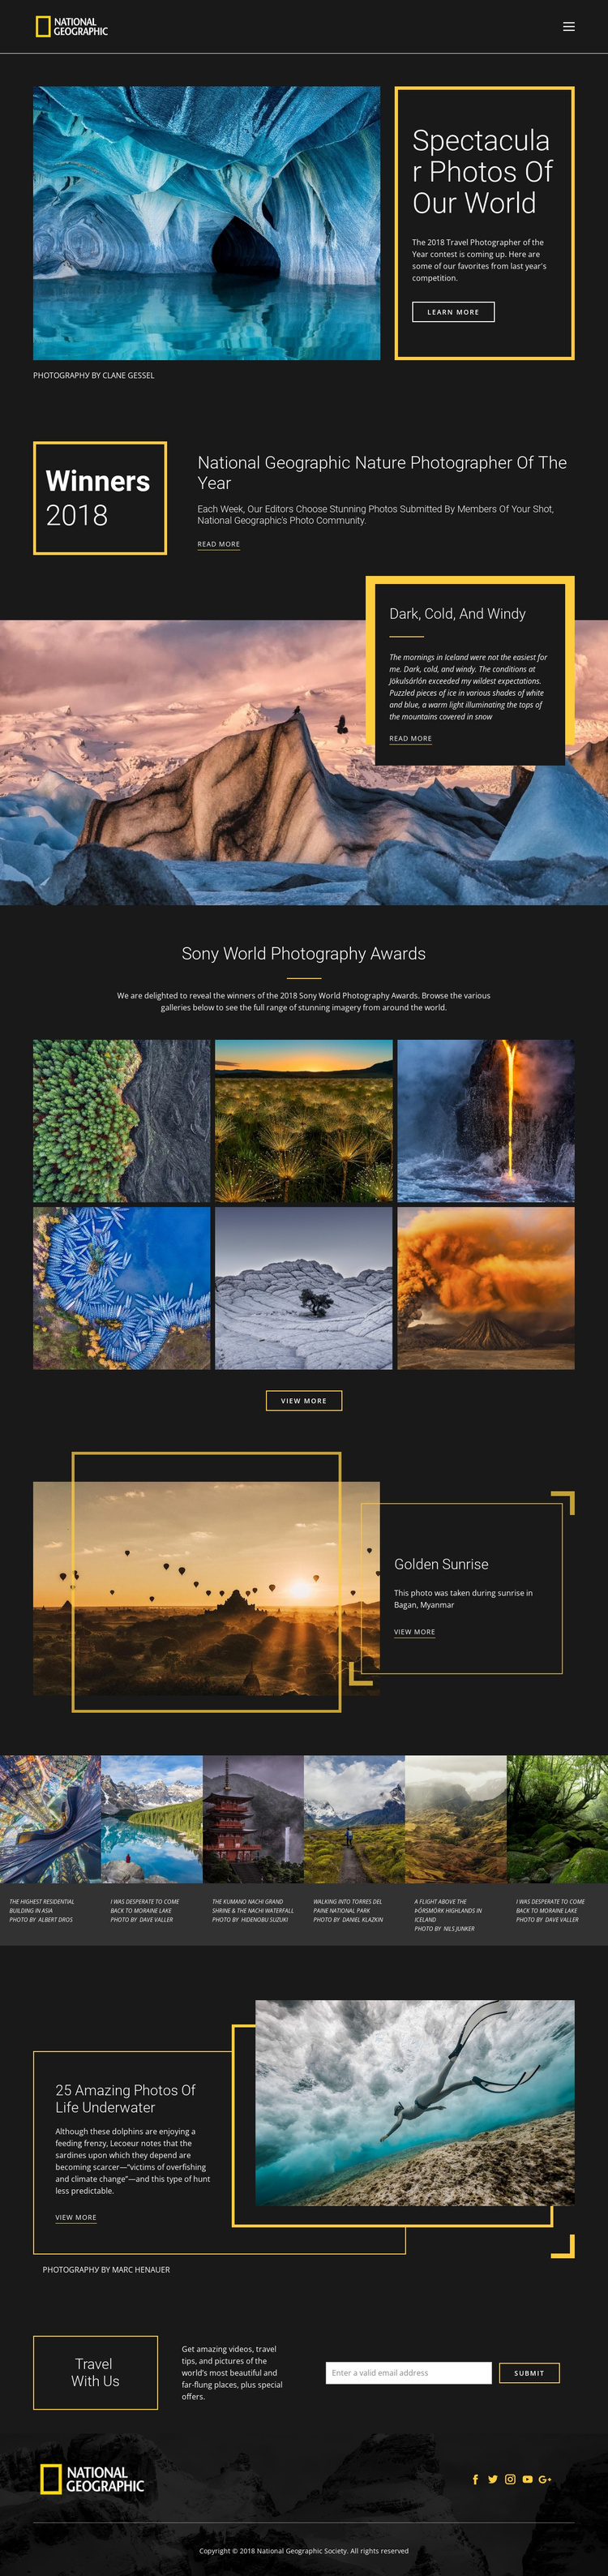 Pictures of nature Joomla Template